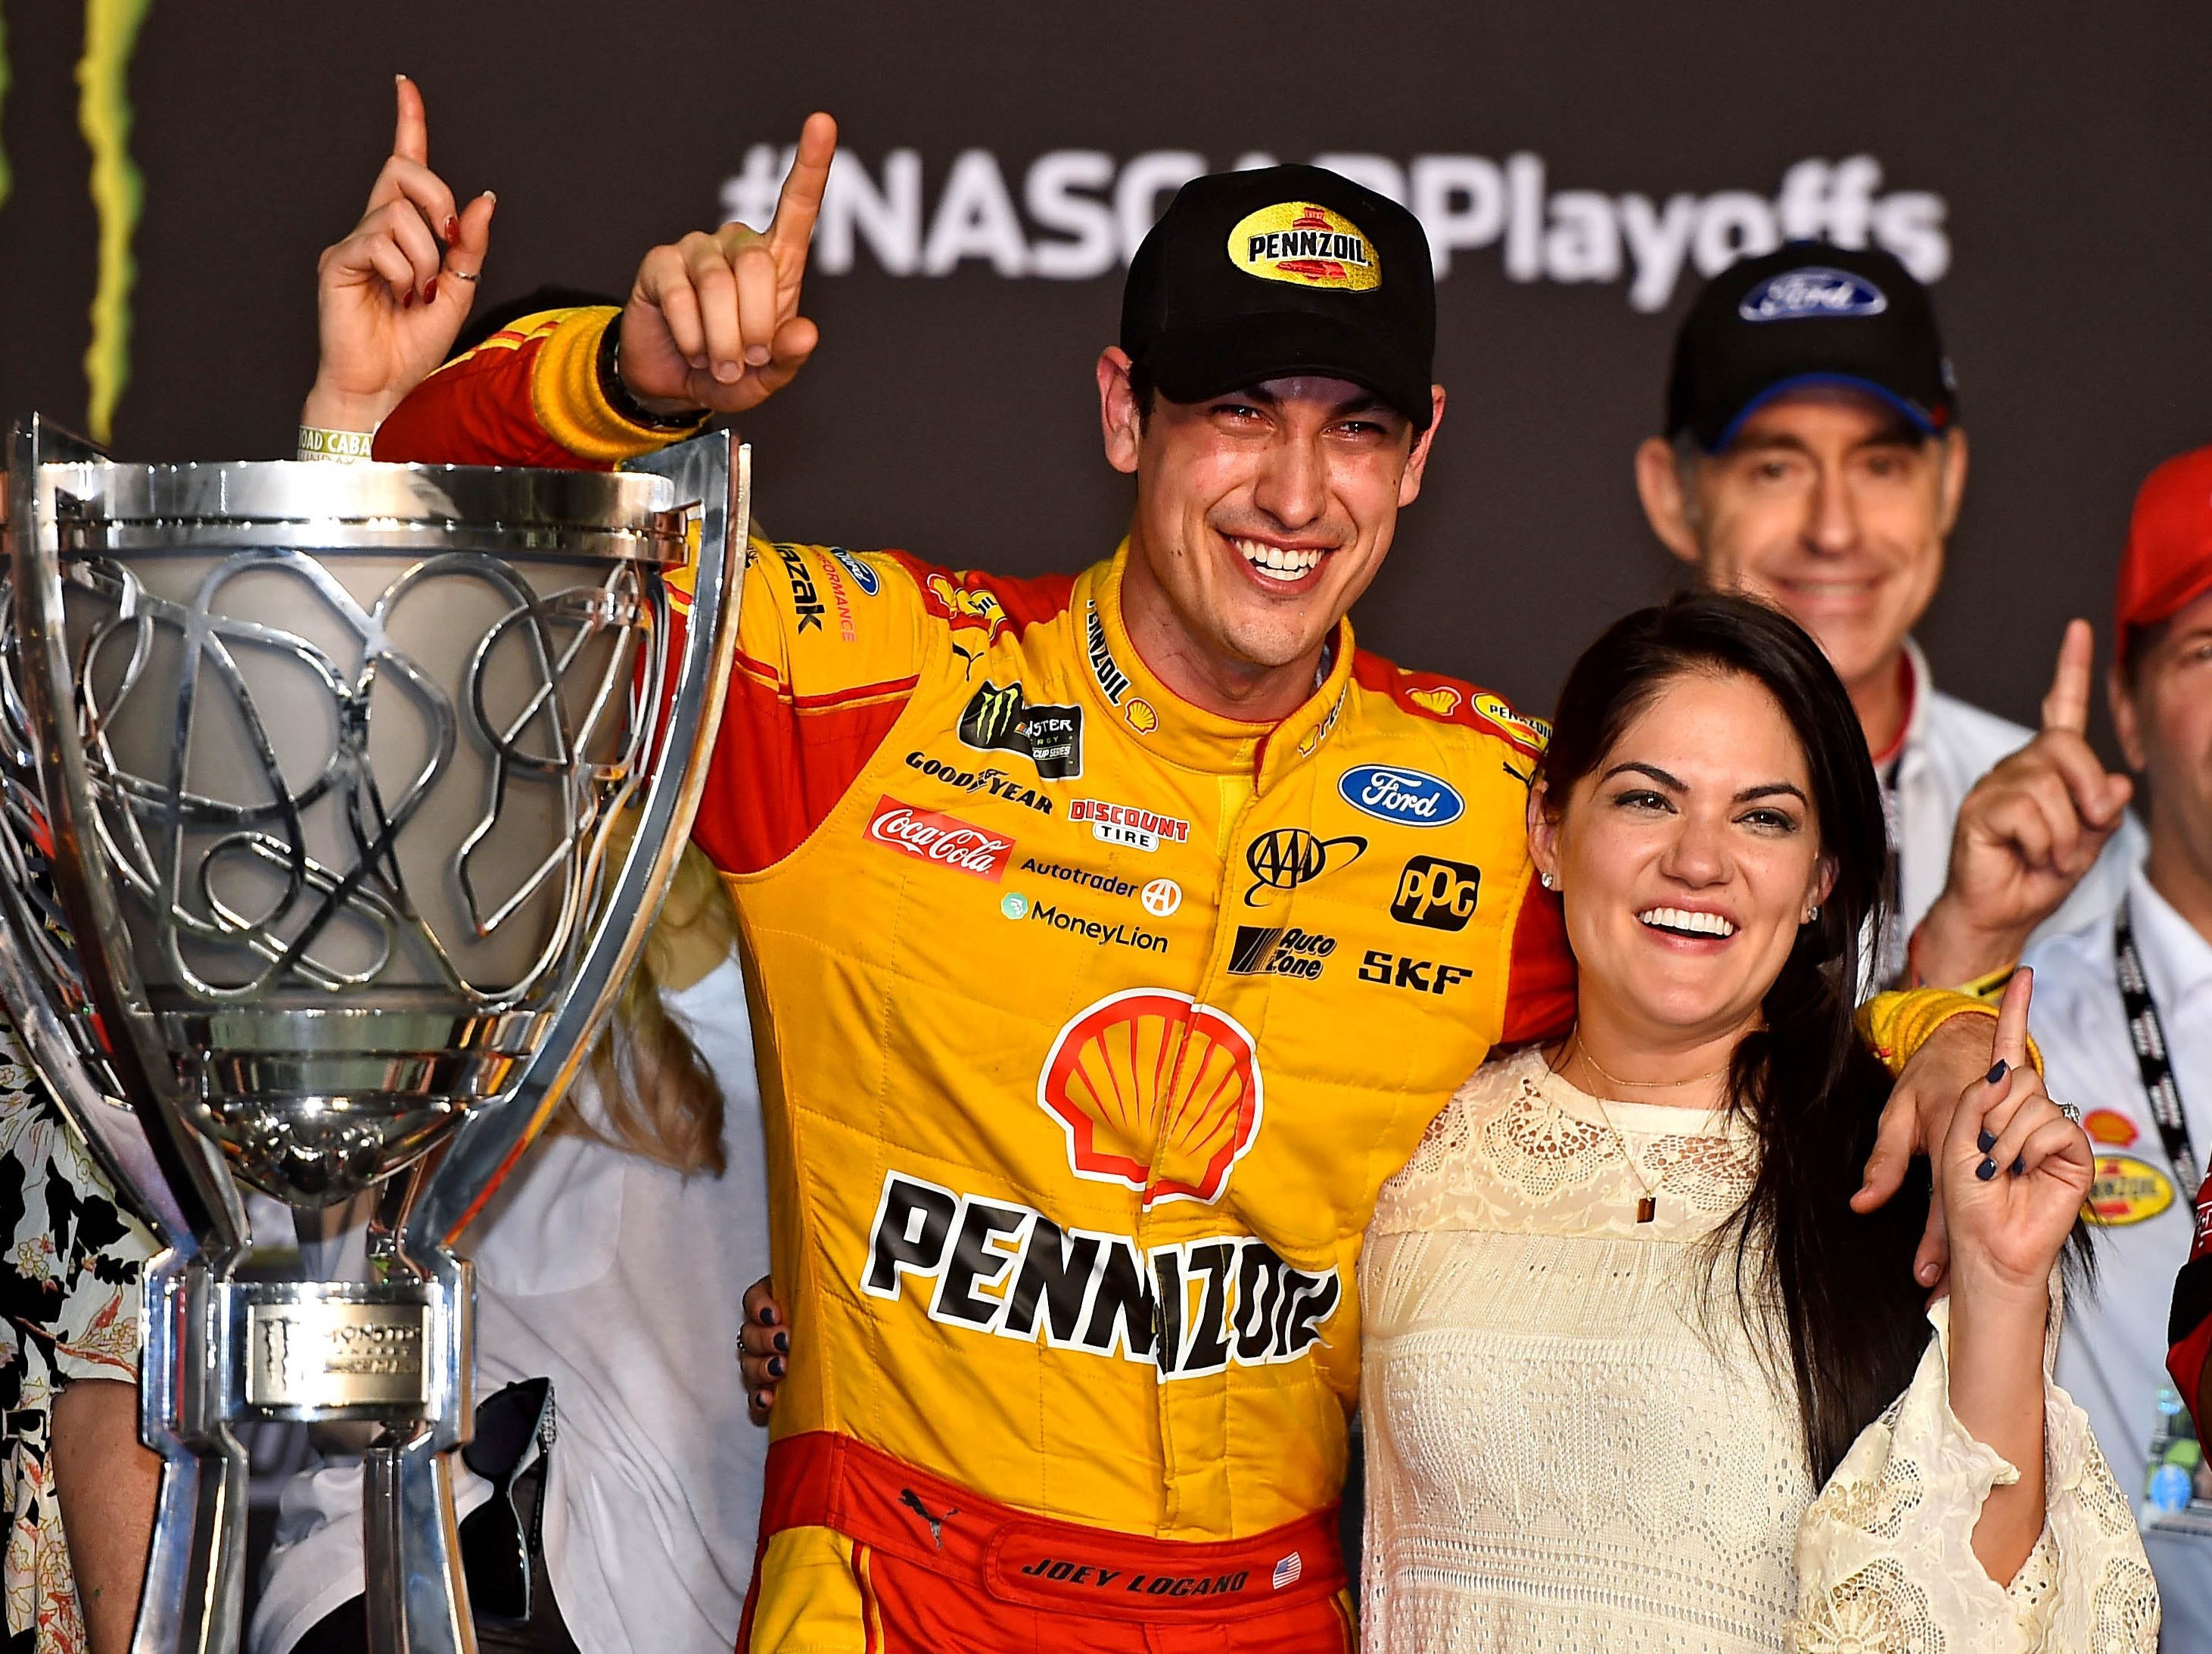 Joey Logano celebrates winning the NASCAR Cup Series championship with his wife Brittany at Homestead-Miami Speedway.